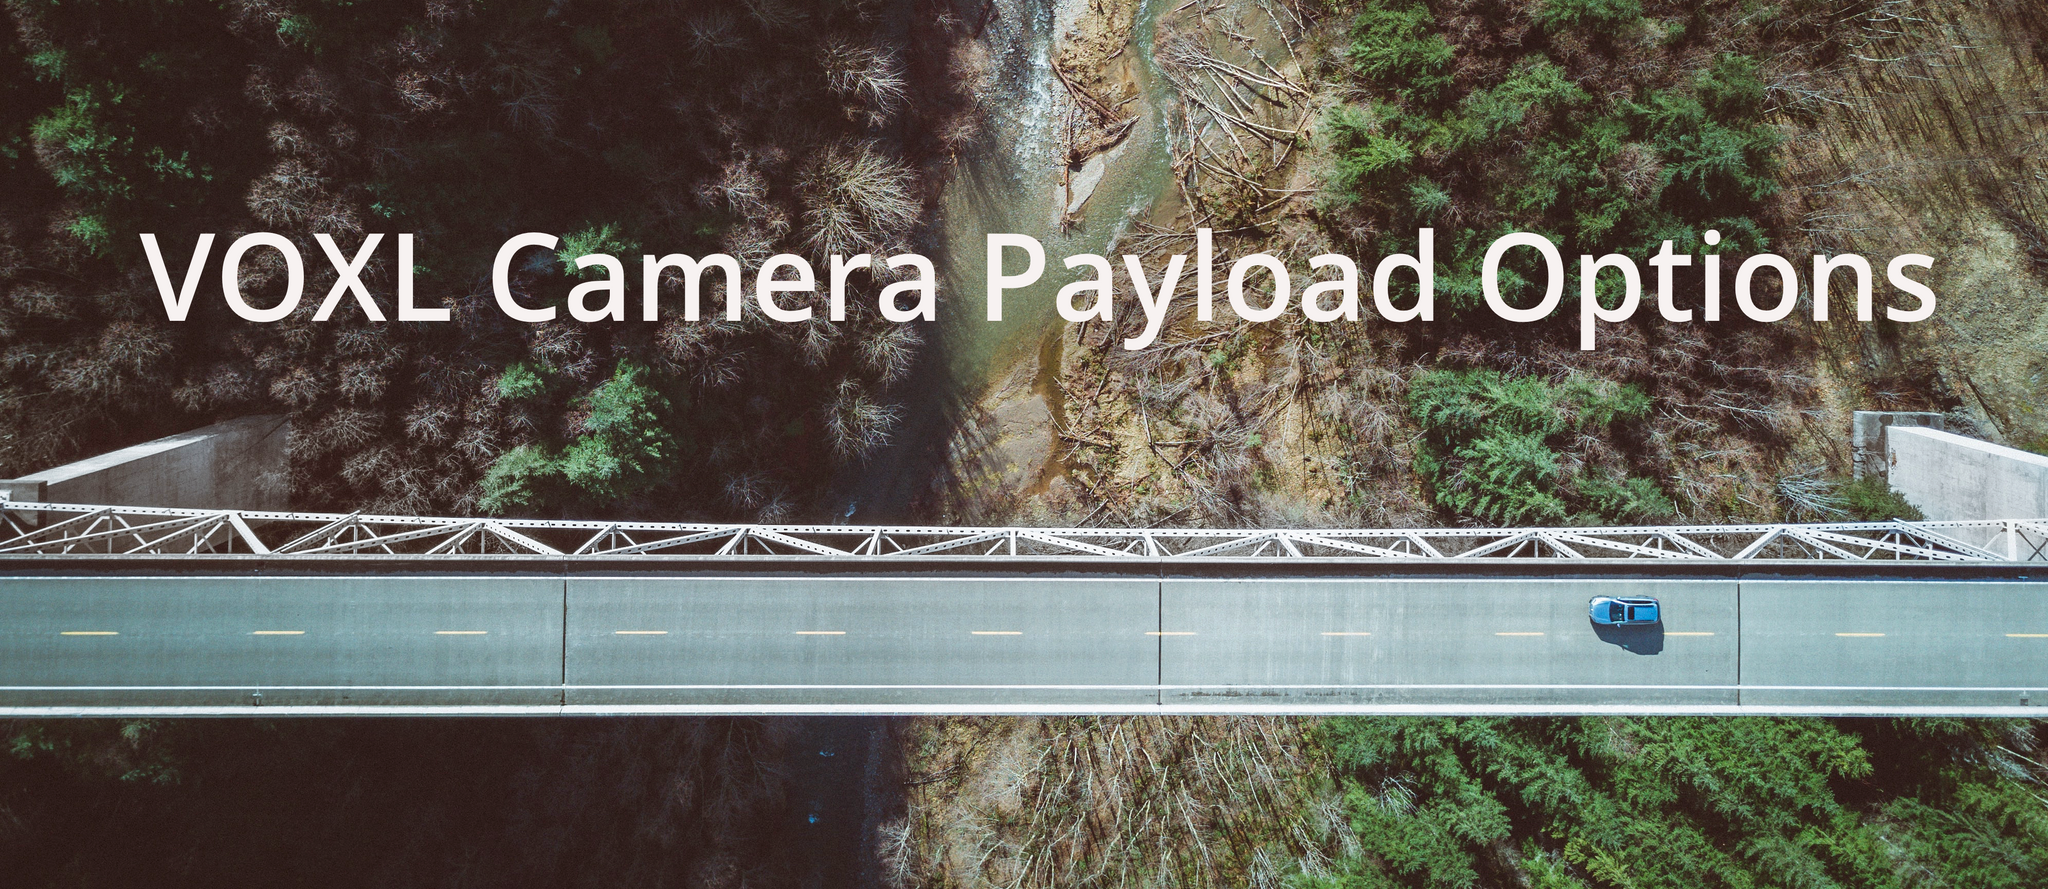 VOXL Camera Payload Options